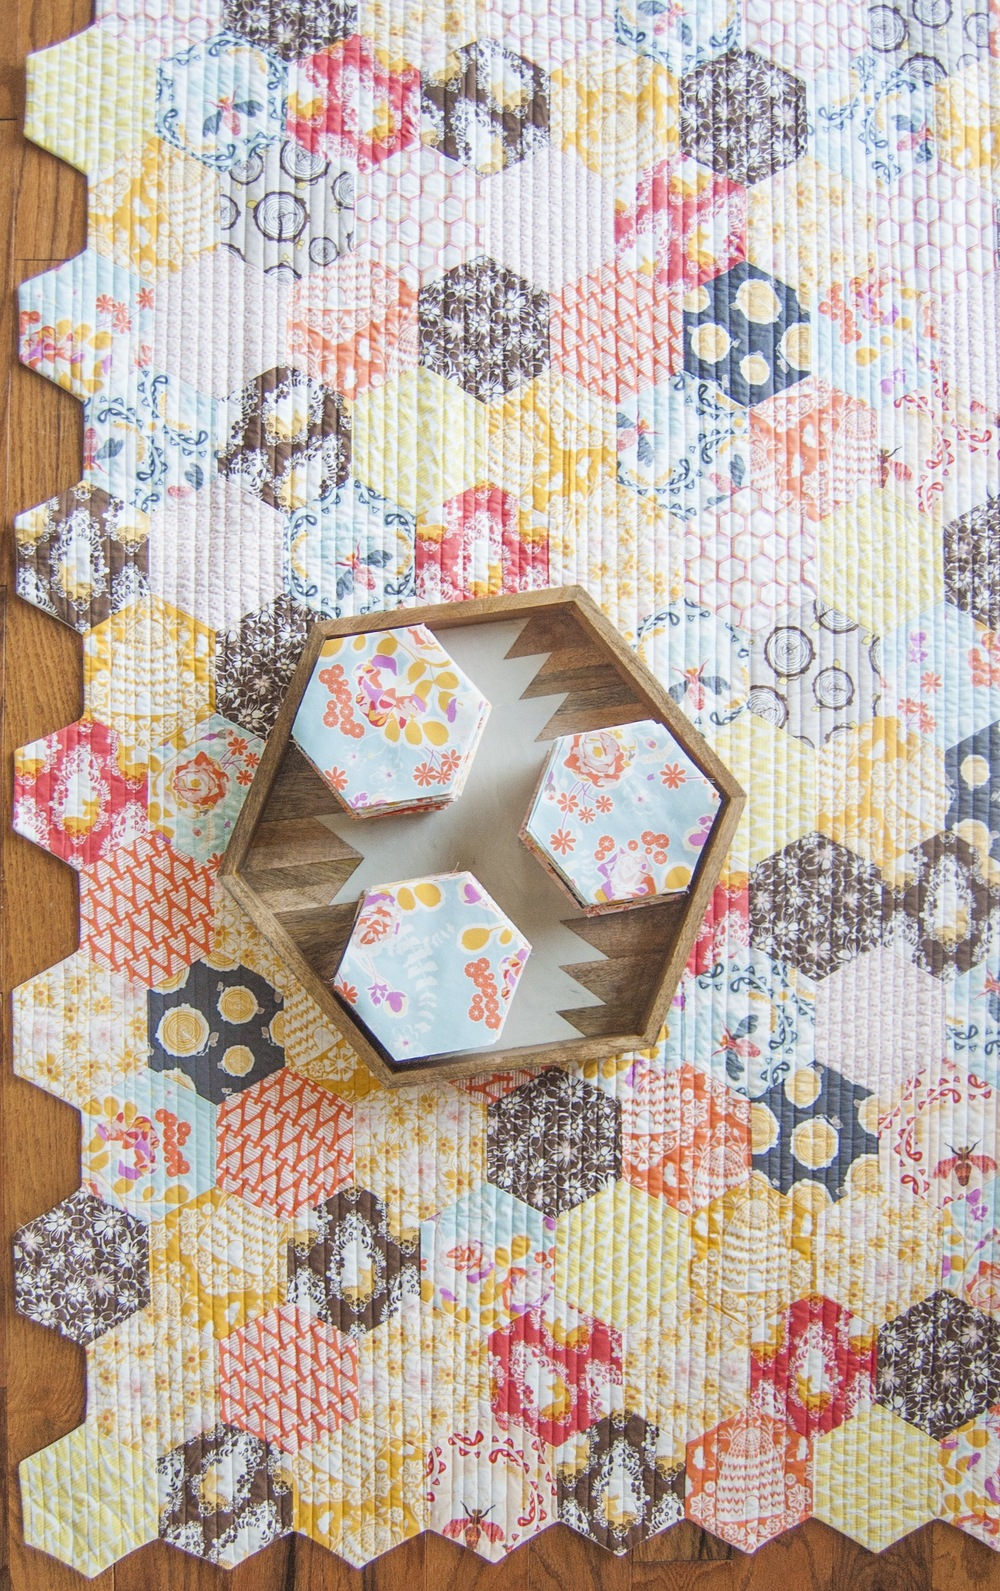 The Honey Pot Quilt